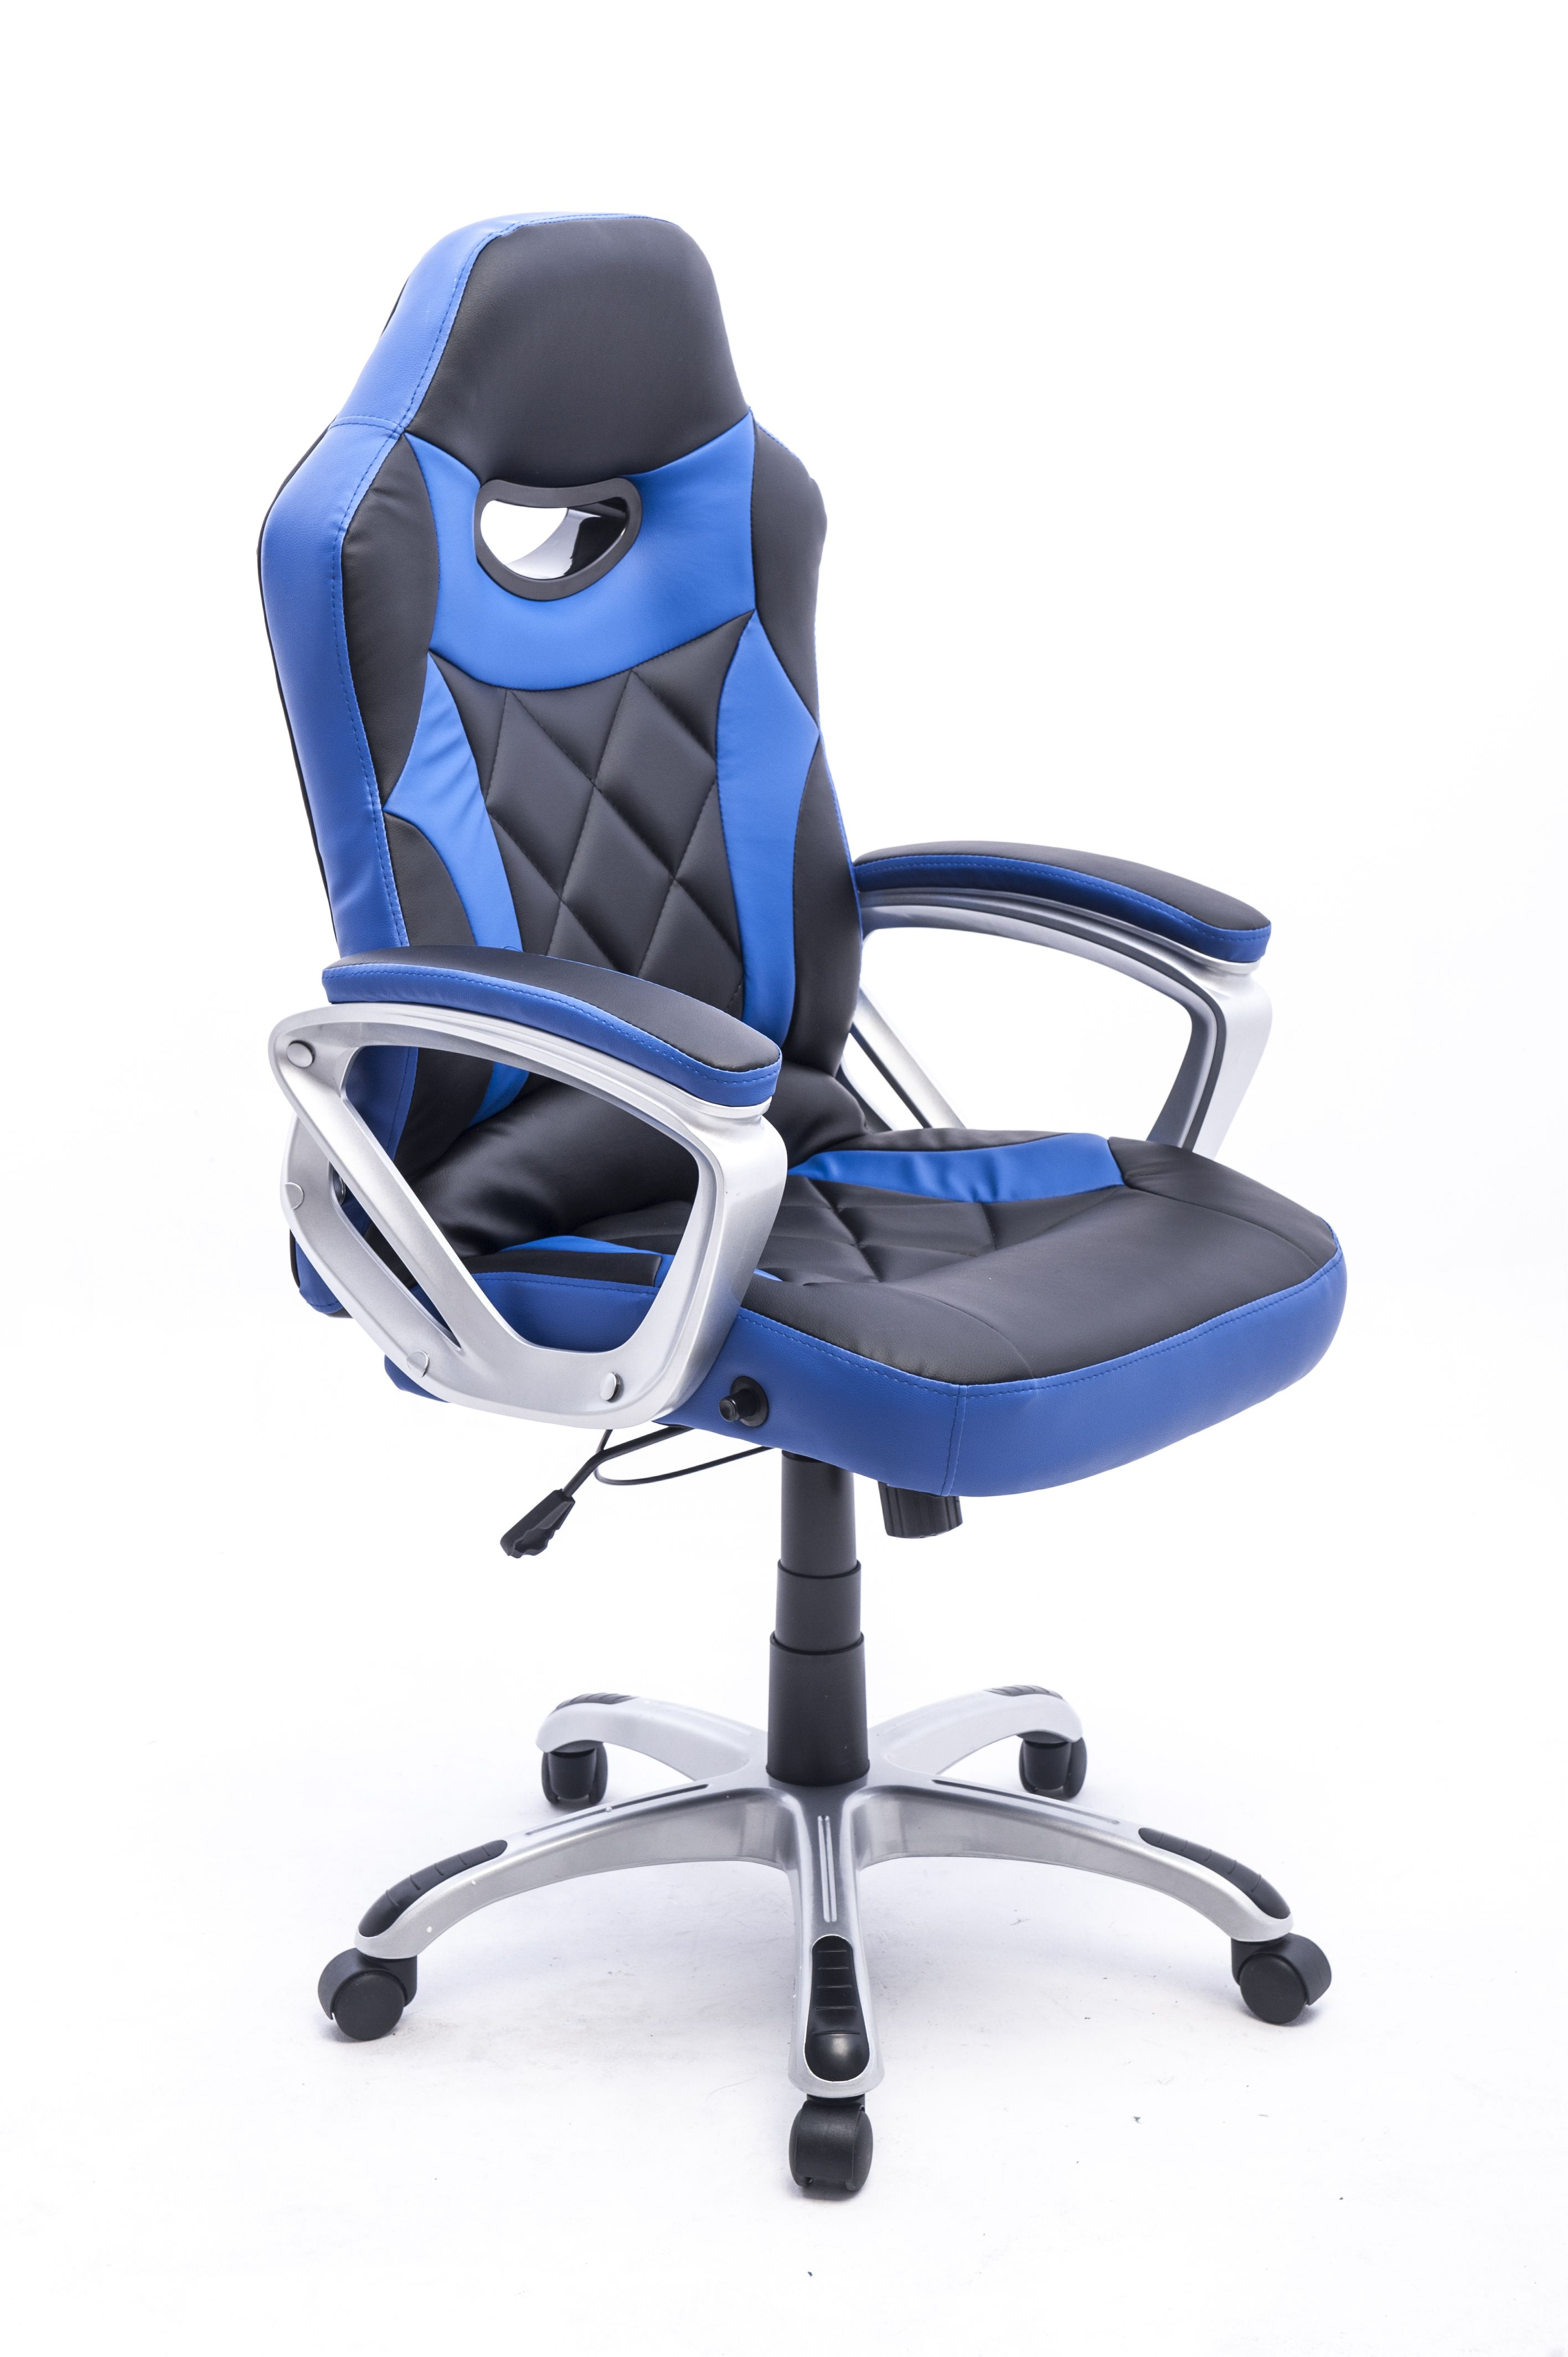 RayGar Sports Gaming Racing Chair Swivel Reclining puter Desk